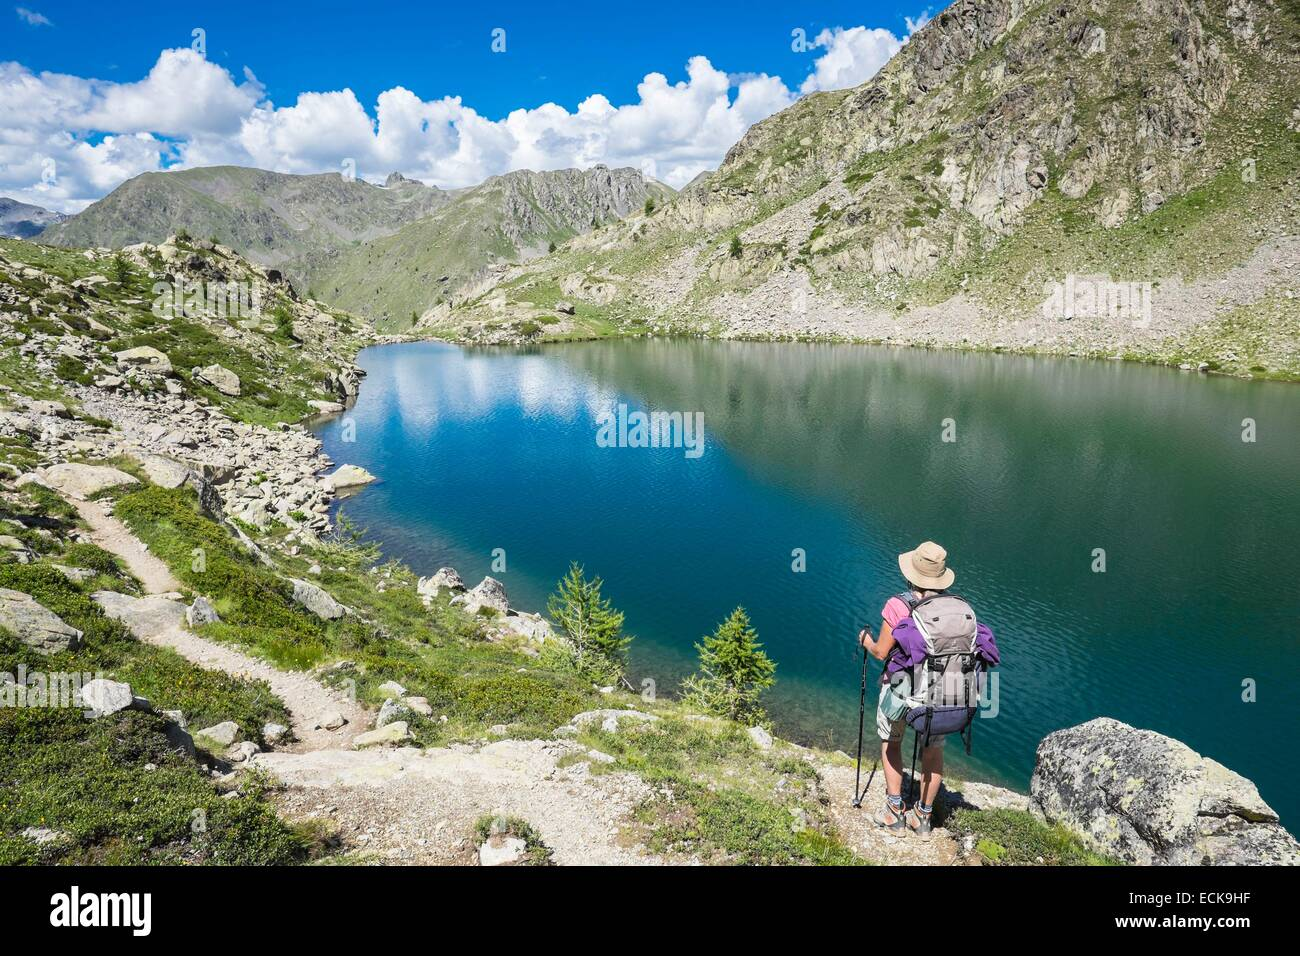 France alpes maritimes mercantour national park hiking to the france alpes maritimes mercantour national park hiking to the lakes of vens sciox Image collections